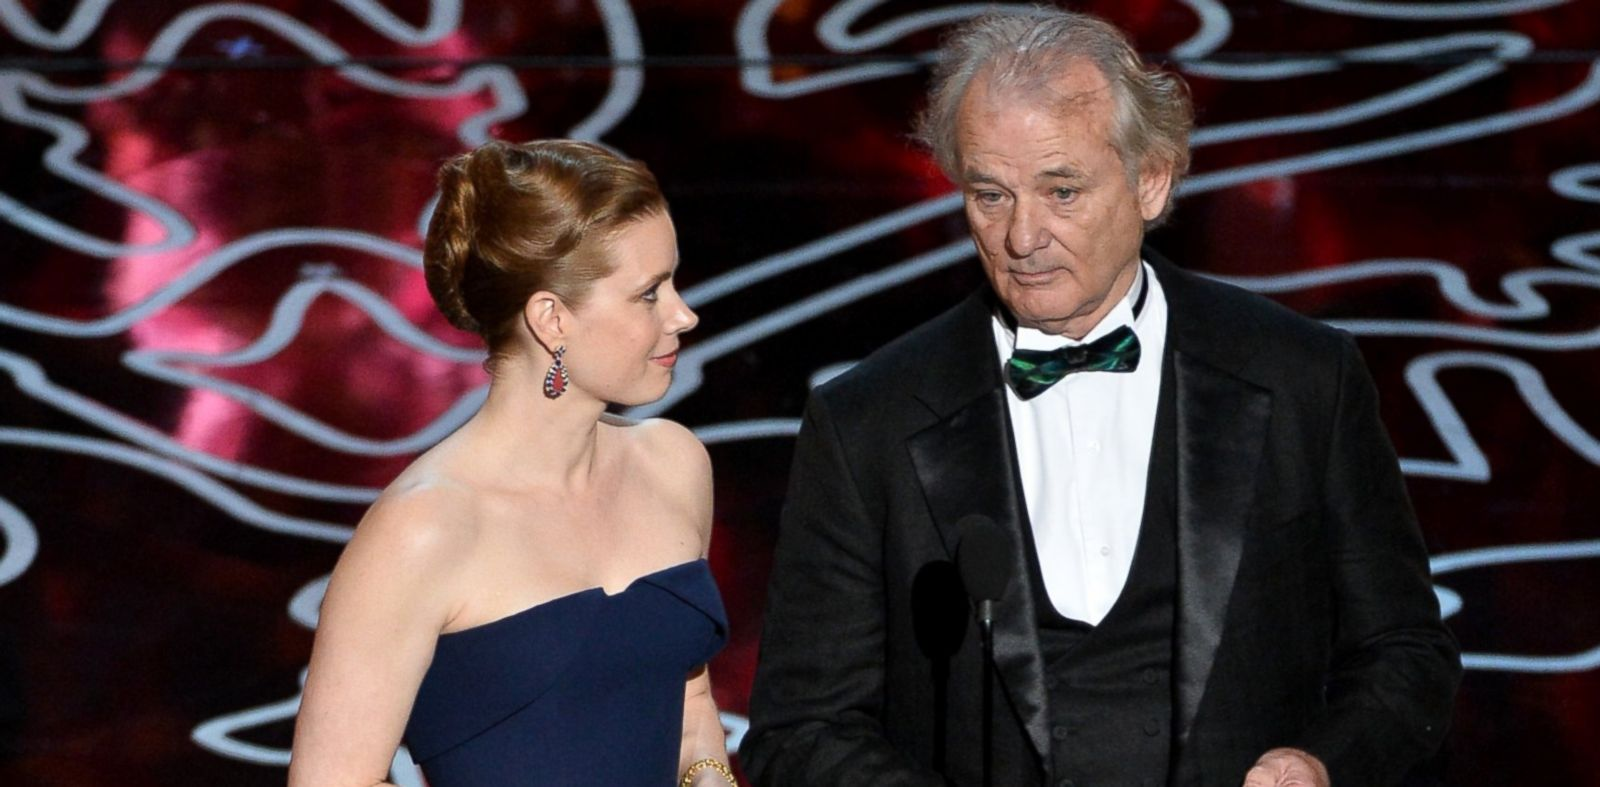 PHOTO: Amy Adams, left, and Bill Murray, right, speak onstage during the Oscars on Mar. 2, 2014 in Hollywood, Calif.